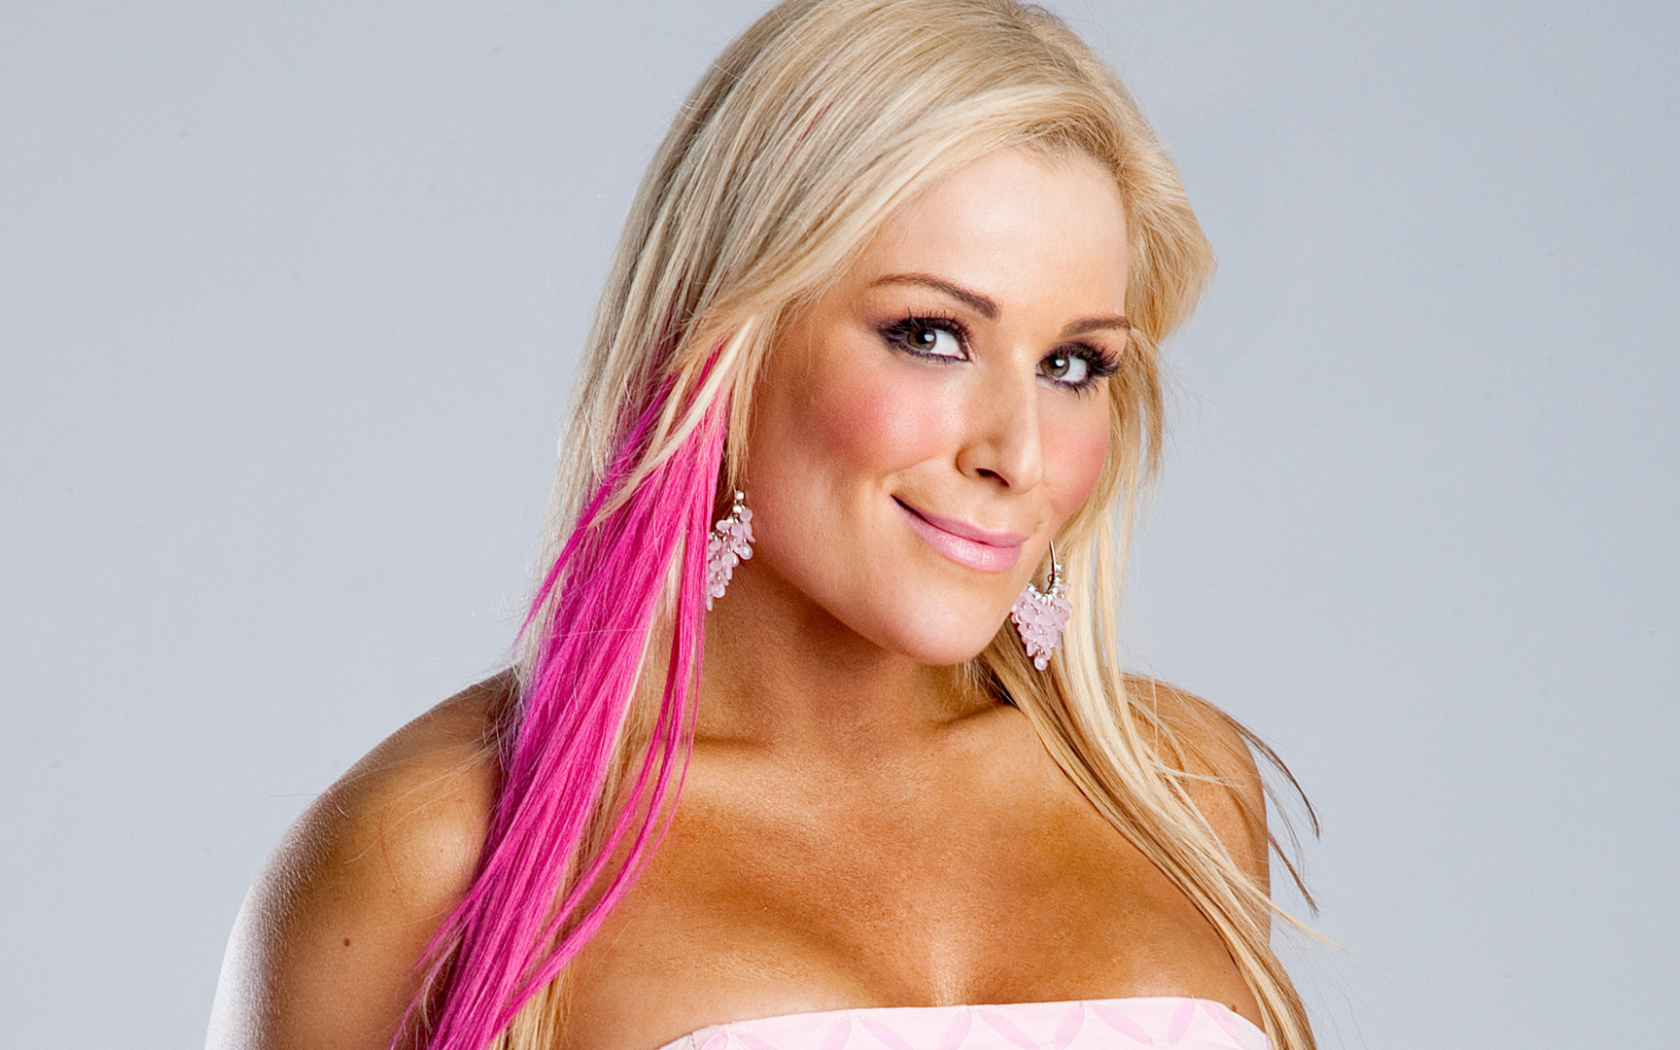 Free download WWE Divas Natalya [1920x1080] for your